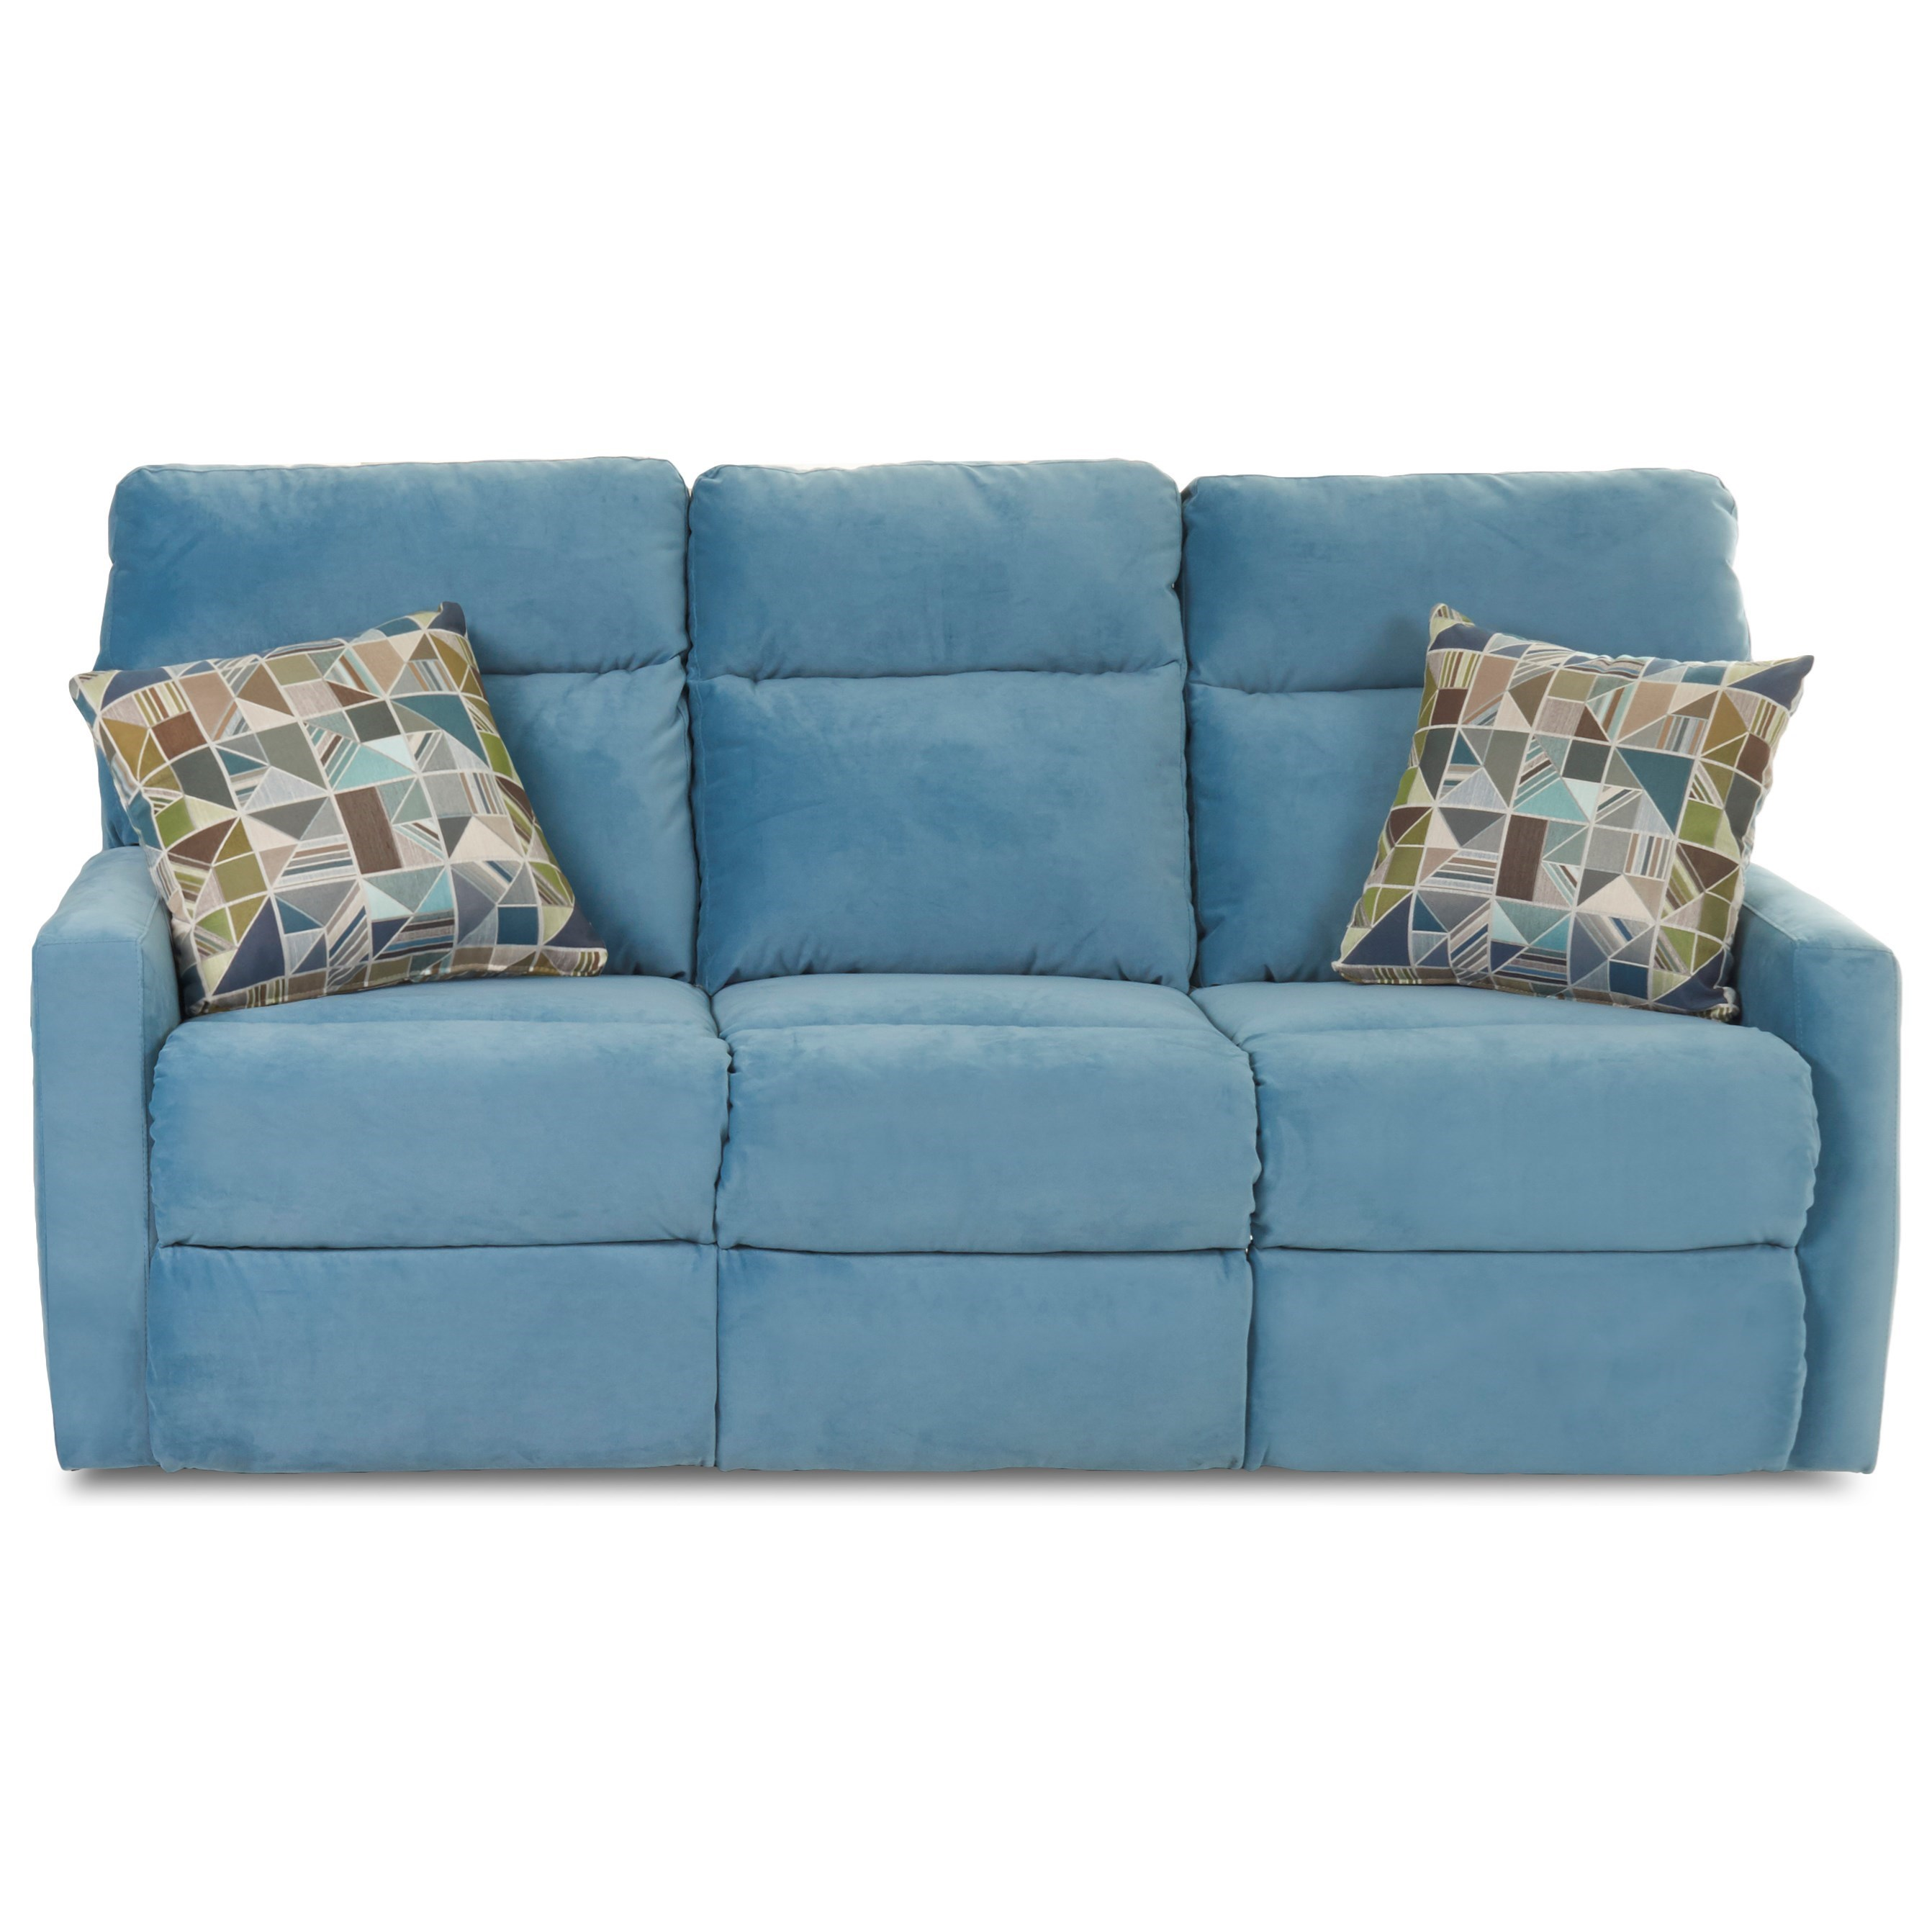 Reclining Sofa with Soft Track Arms and Pillows